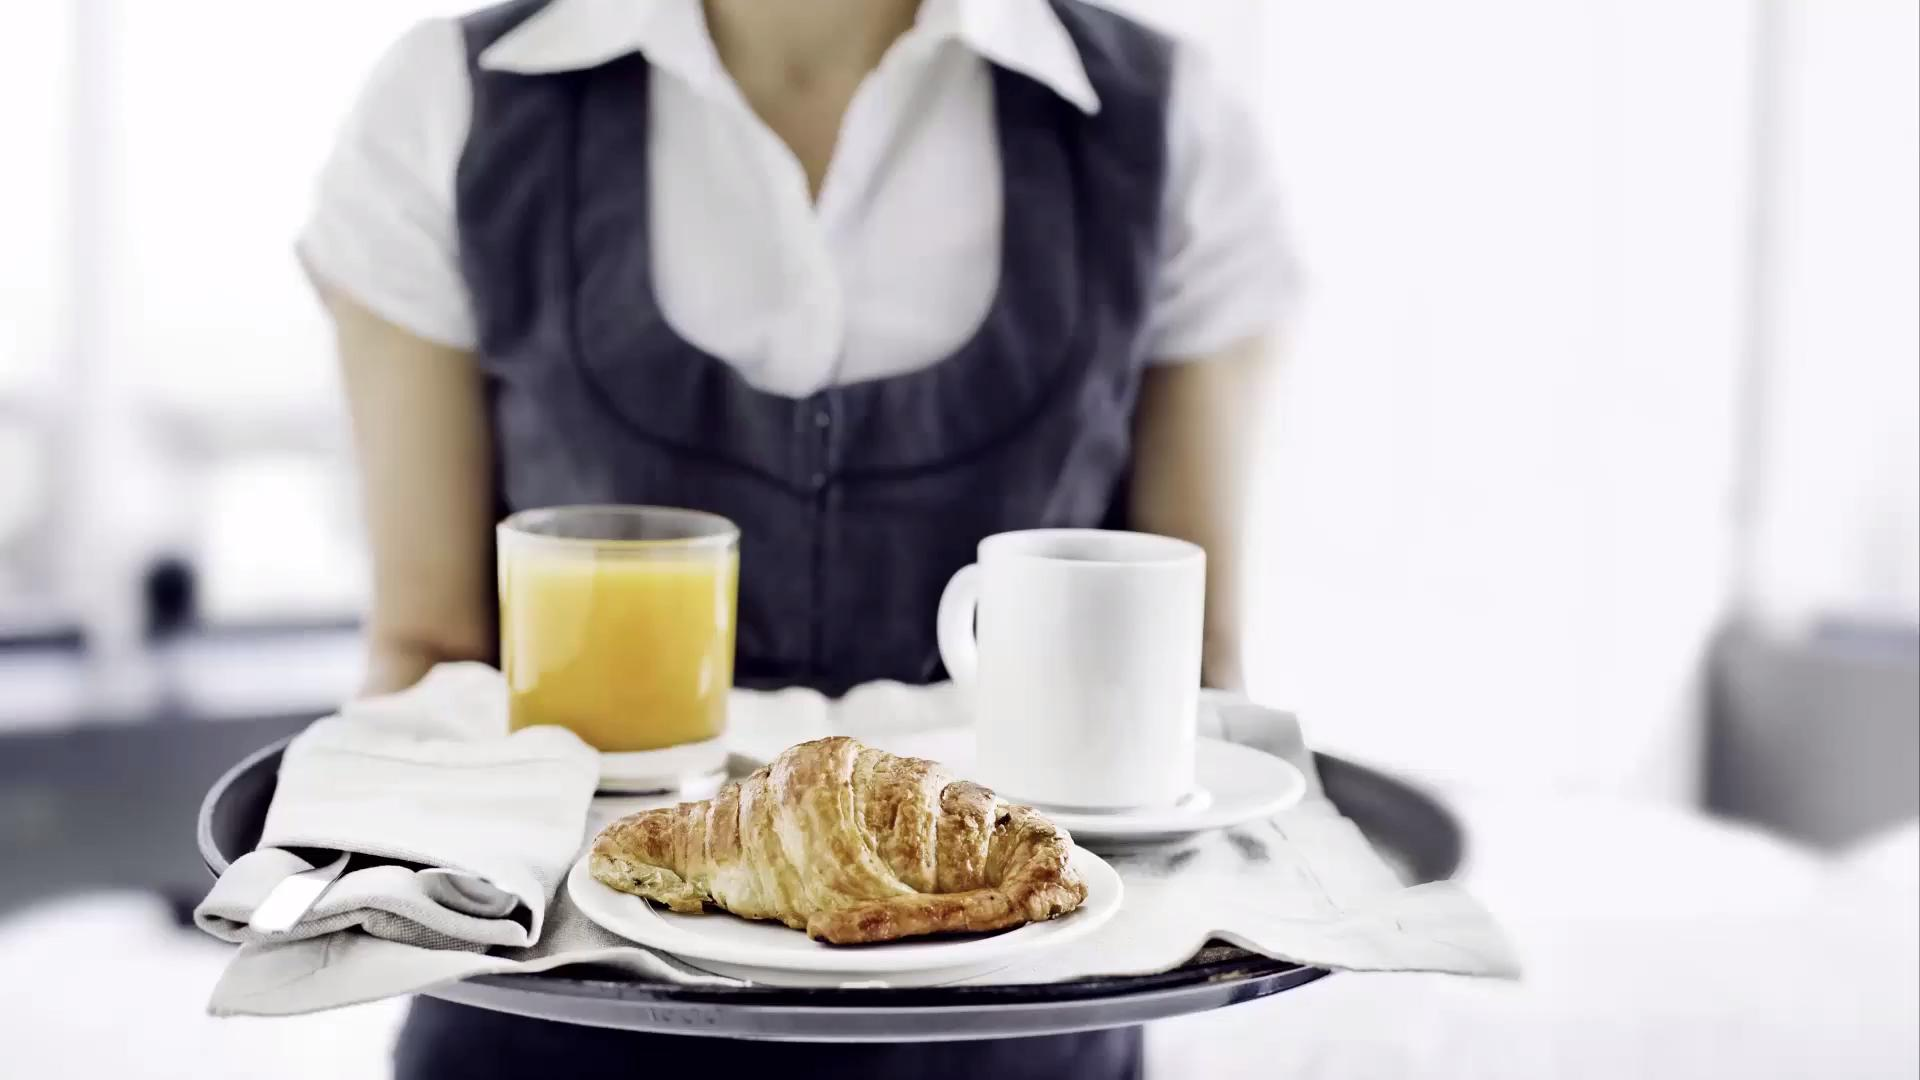 5 Things You Should Never Order from Room Service